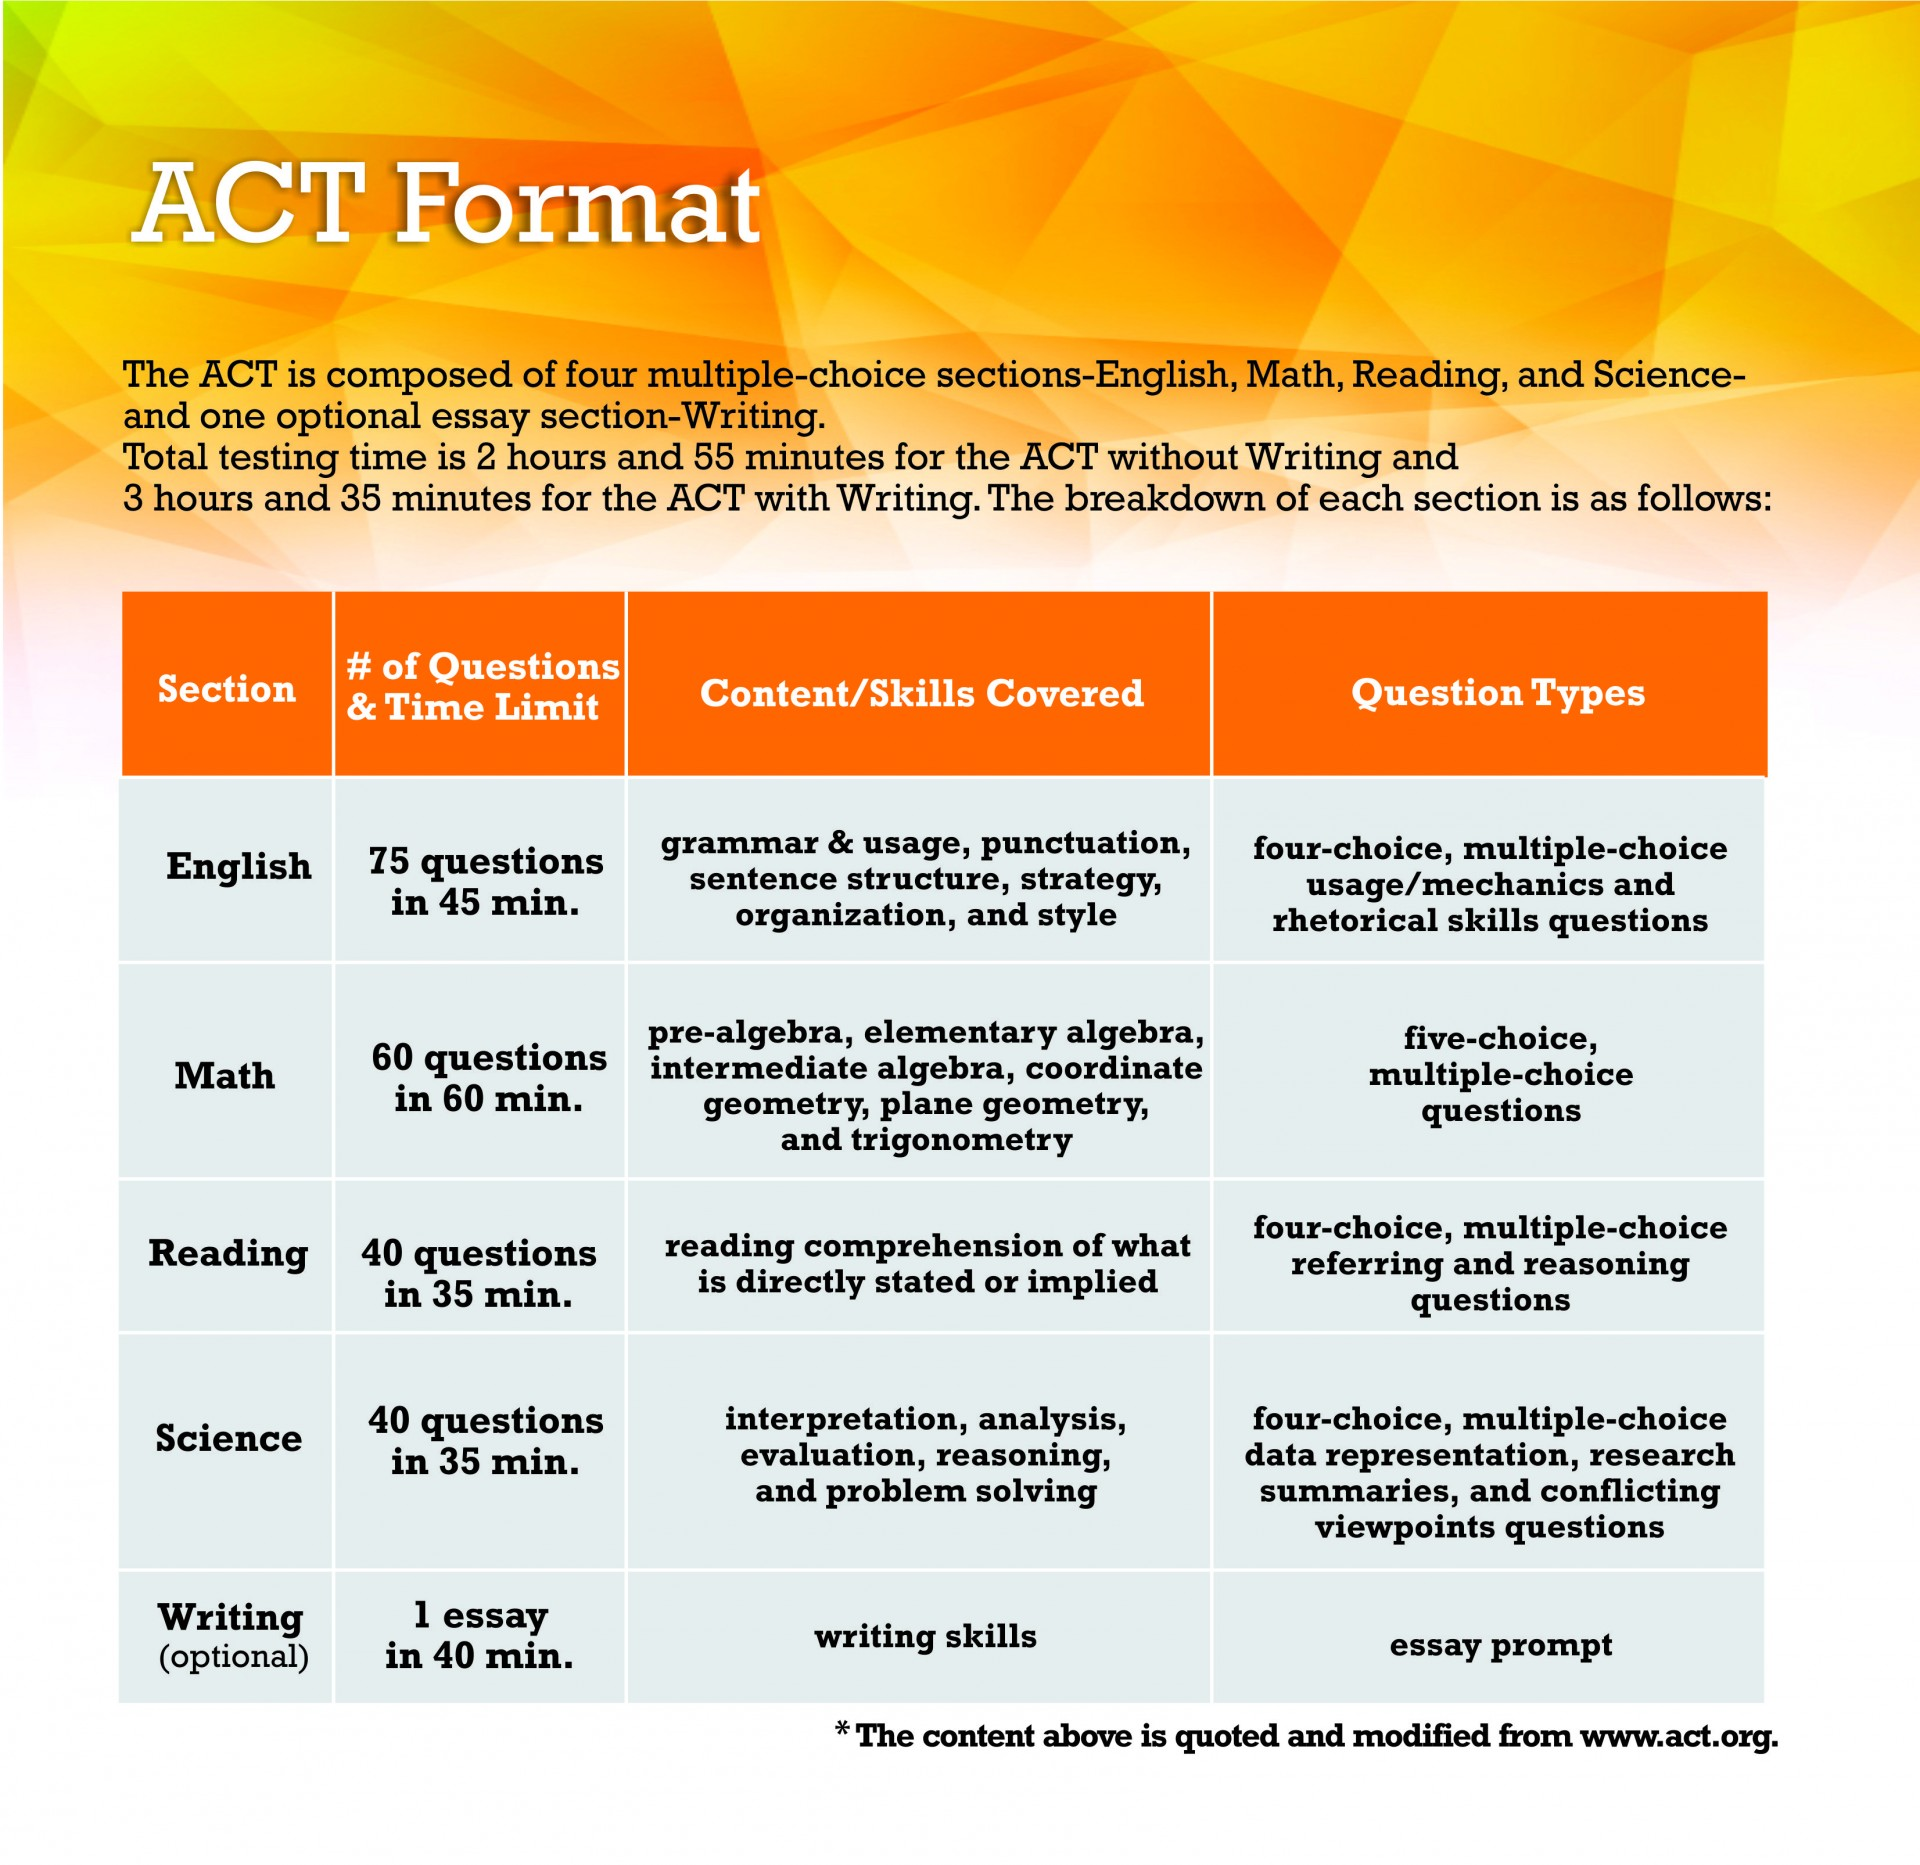 009 Act Format Essay Fearsome Topics Prompt New Time Limit 1920